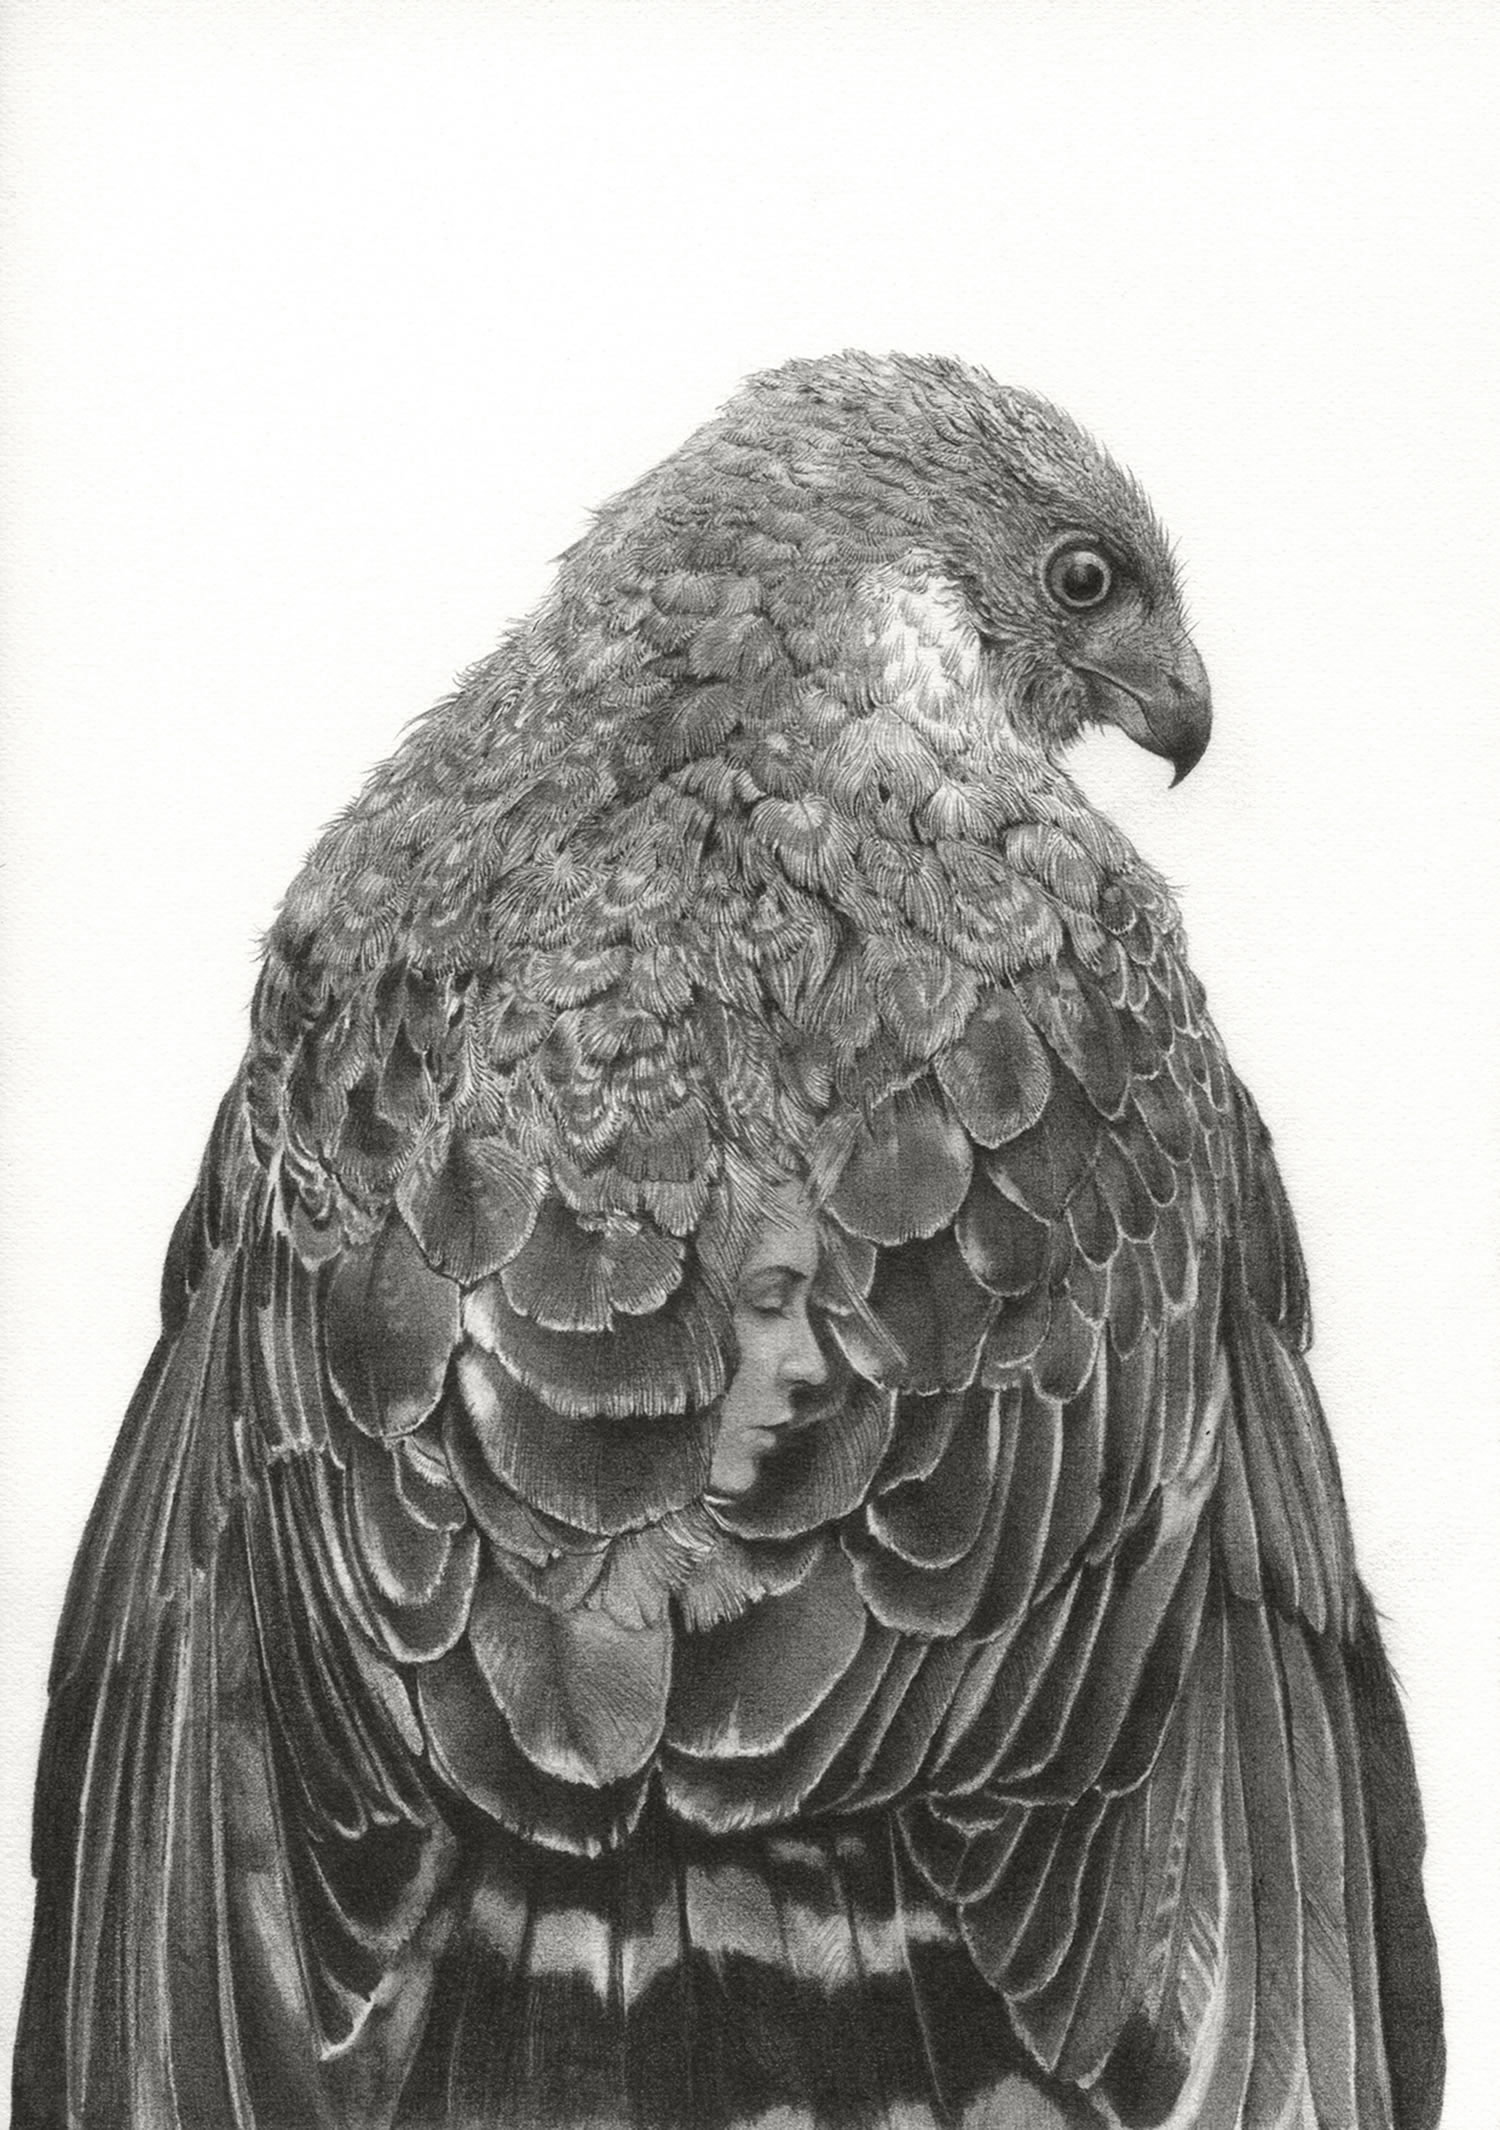 Pencil drawings by Alejandro Garcia Restrepo